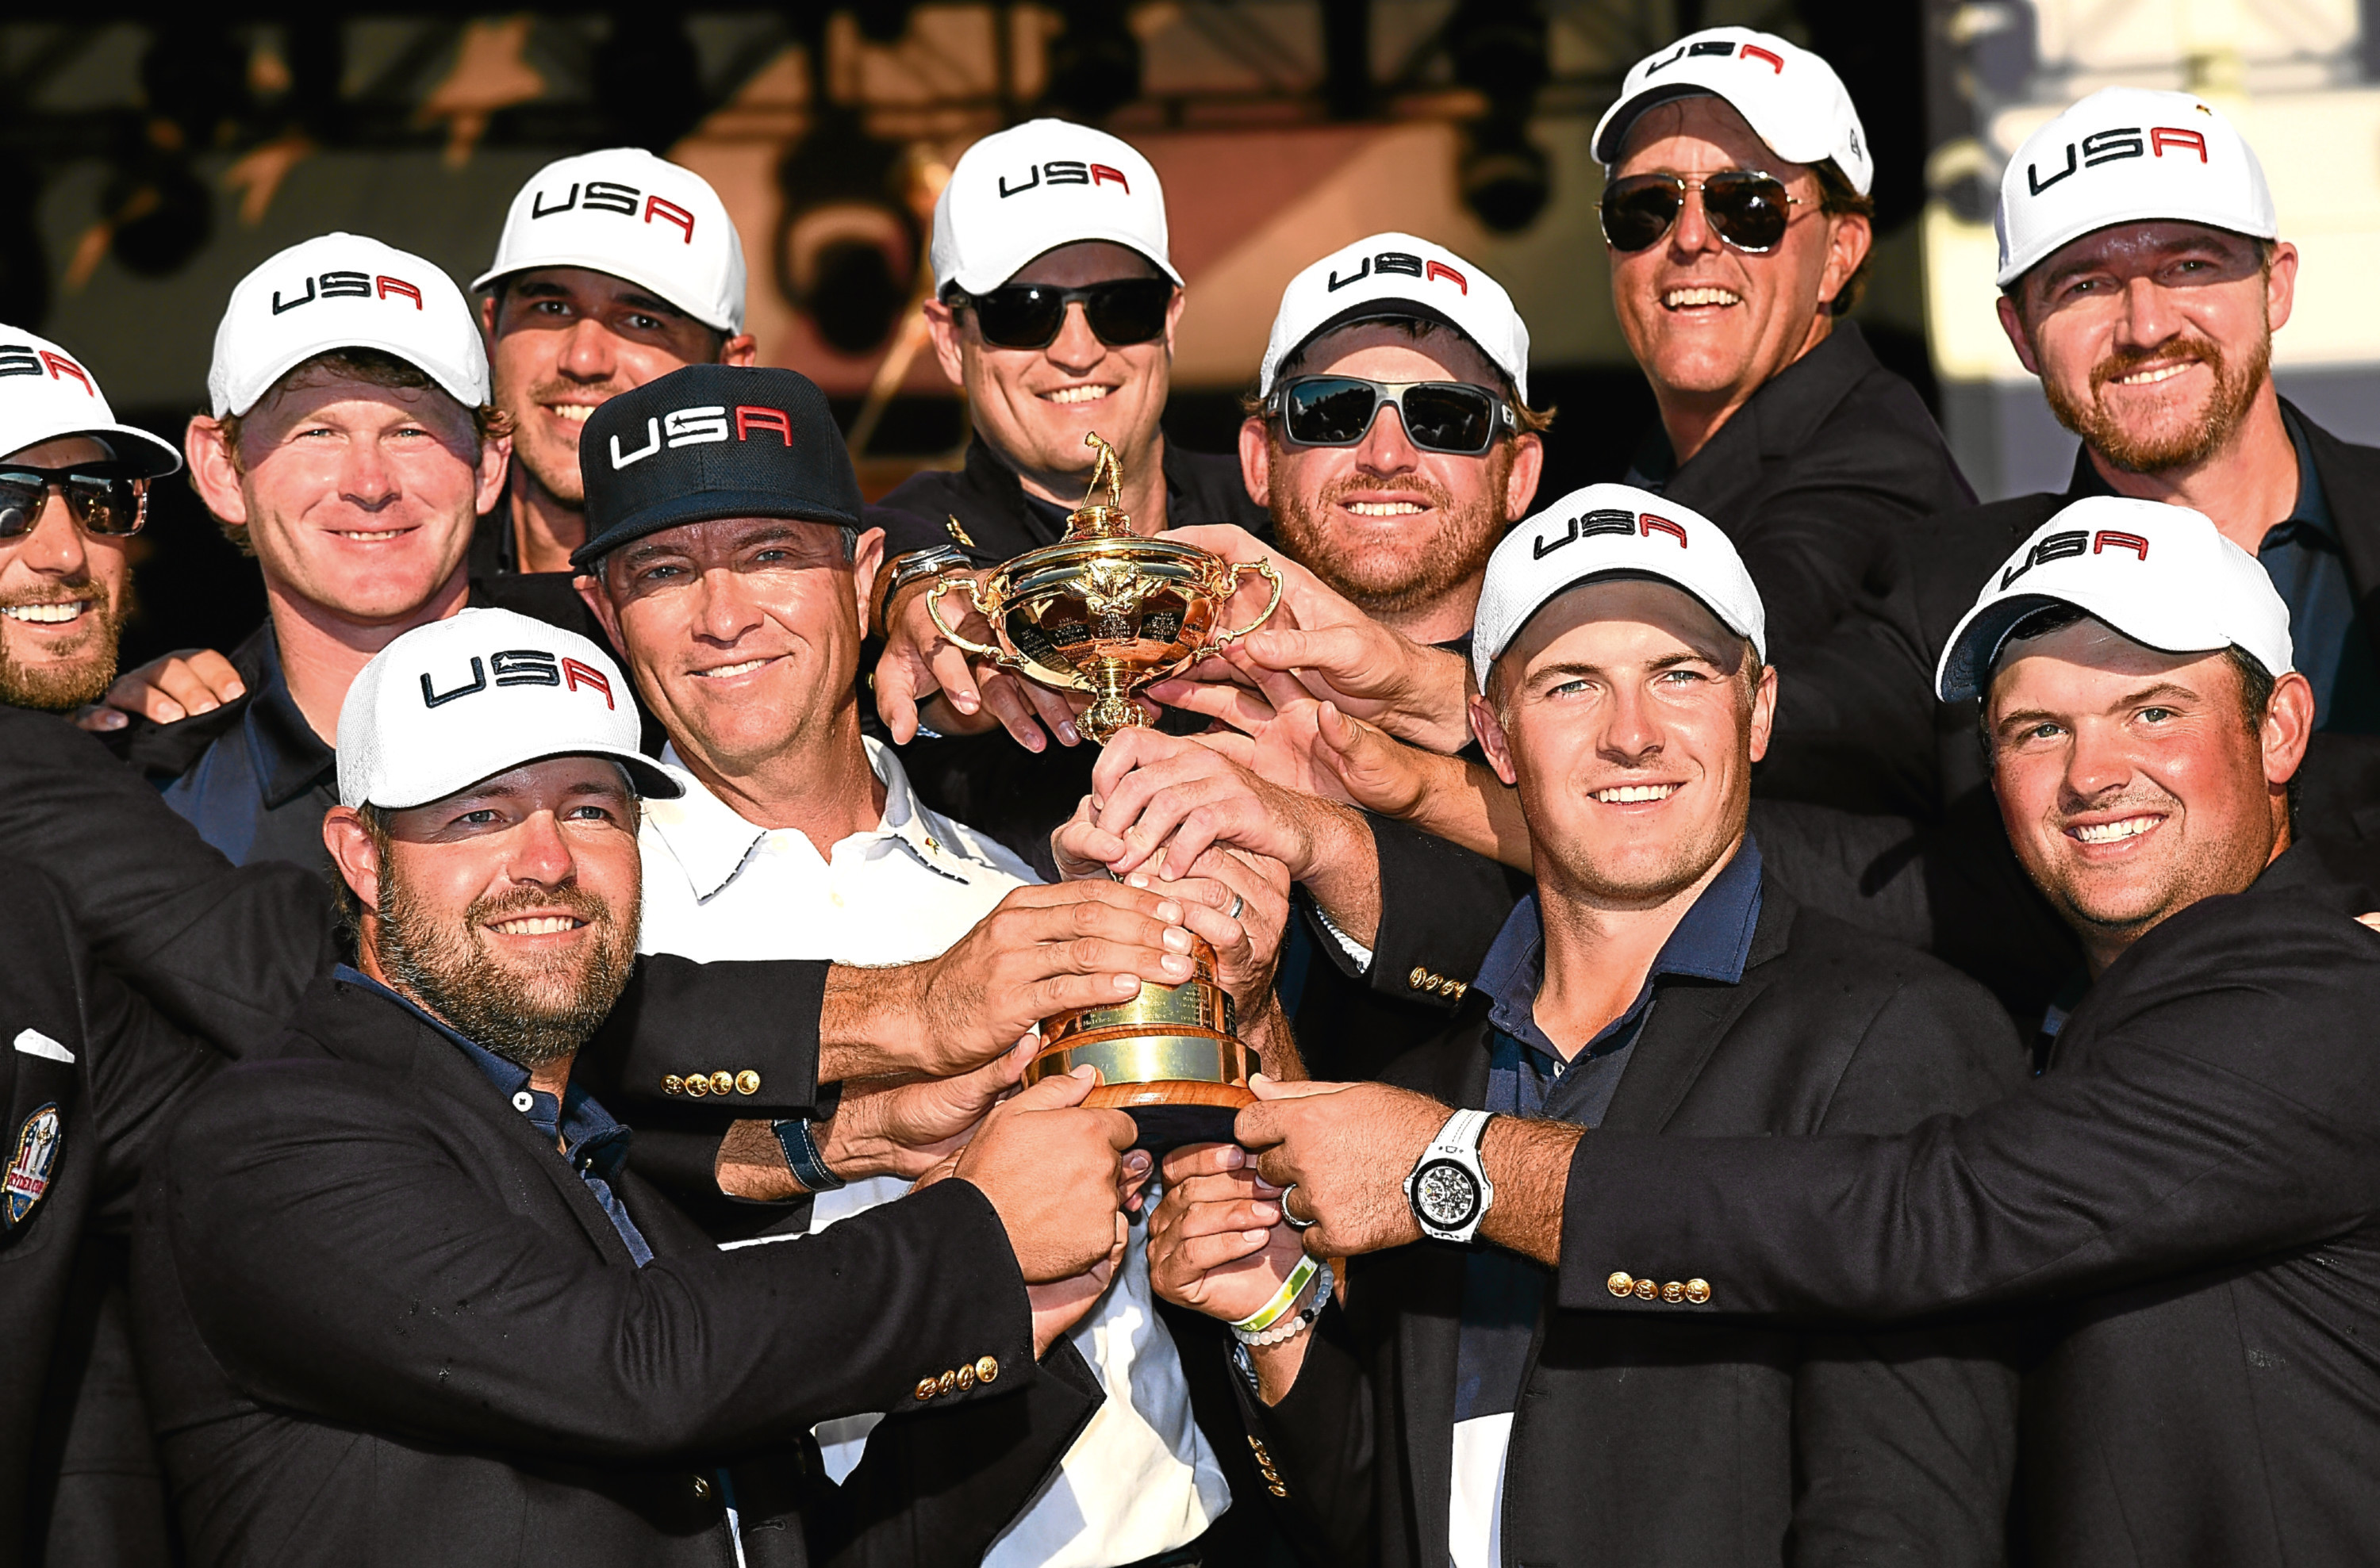 Davis Love (centre) with his victorious US team after their Ryder Cup win at Hazeltine.